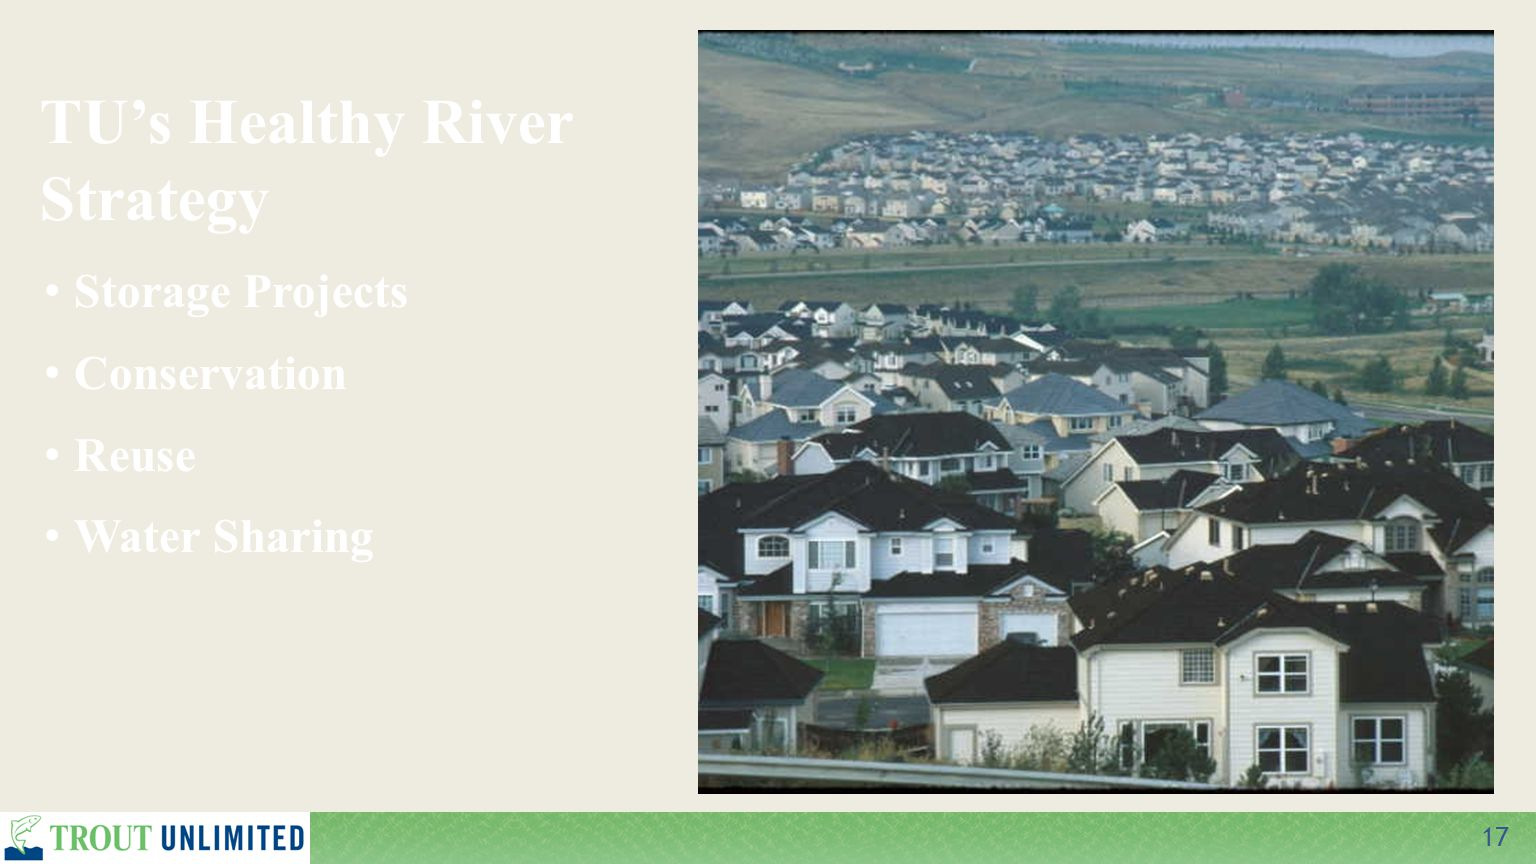 17 TU's Healthy River Strategy Storage Projects Conservation Reuse Water Sharing